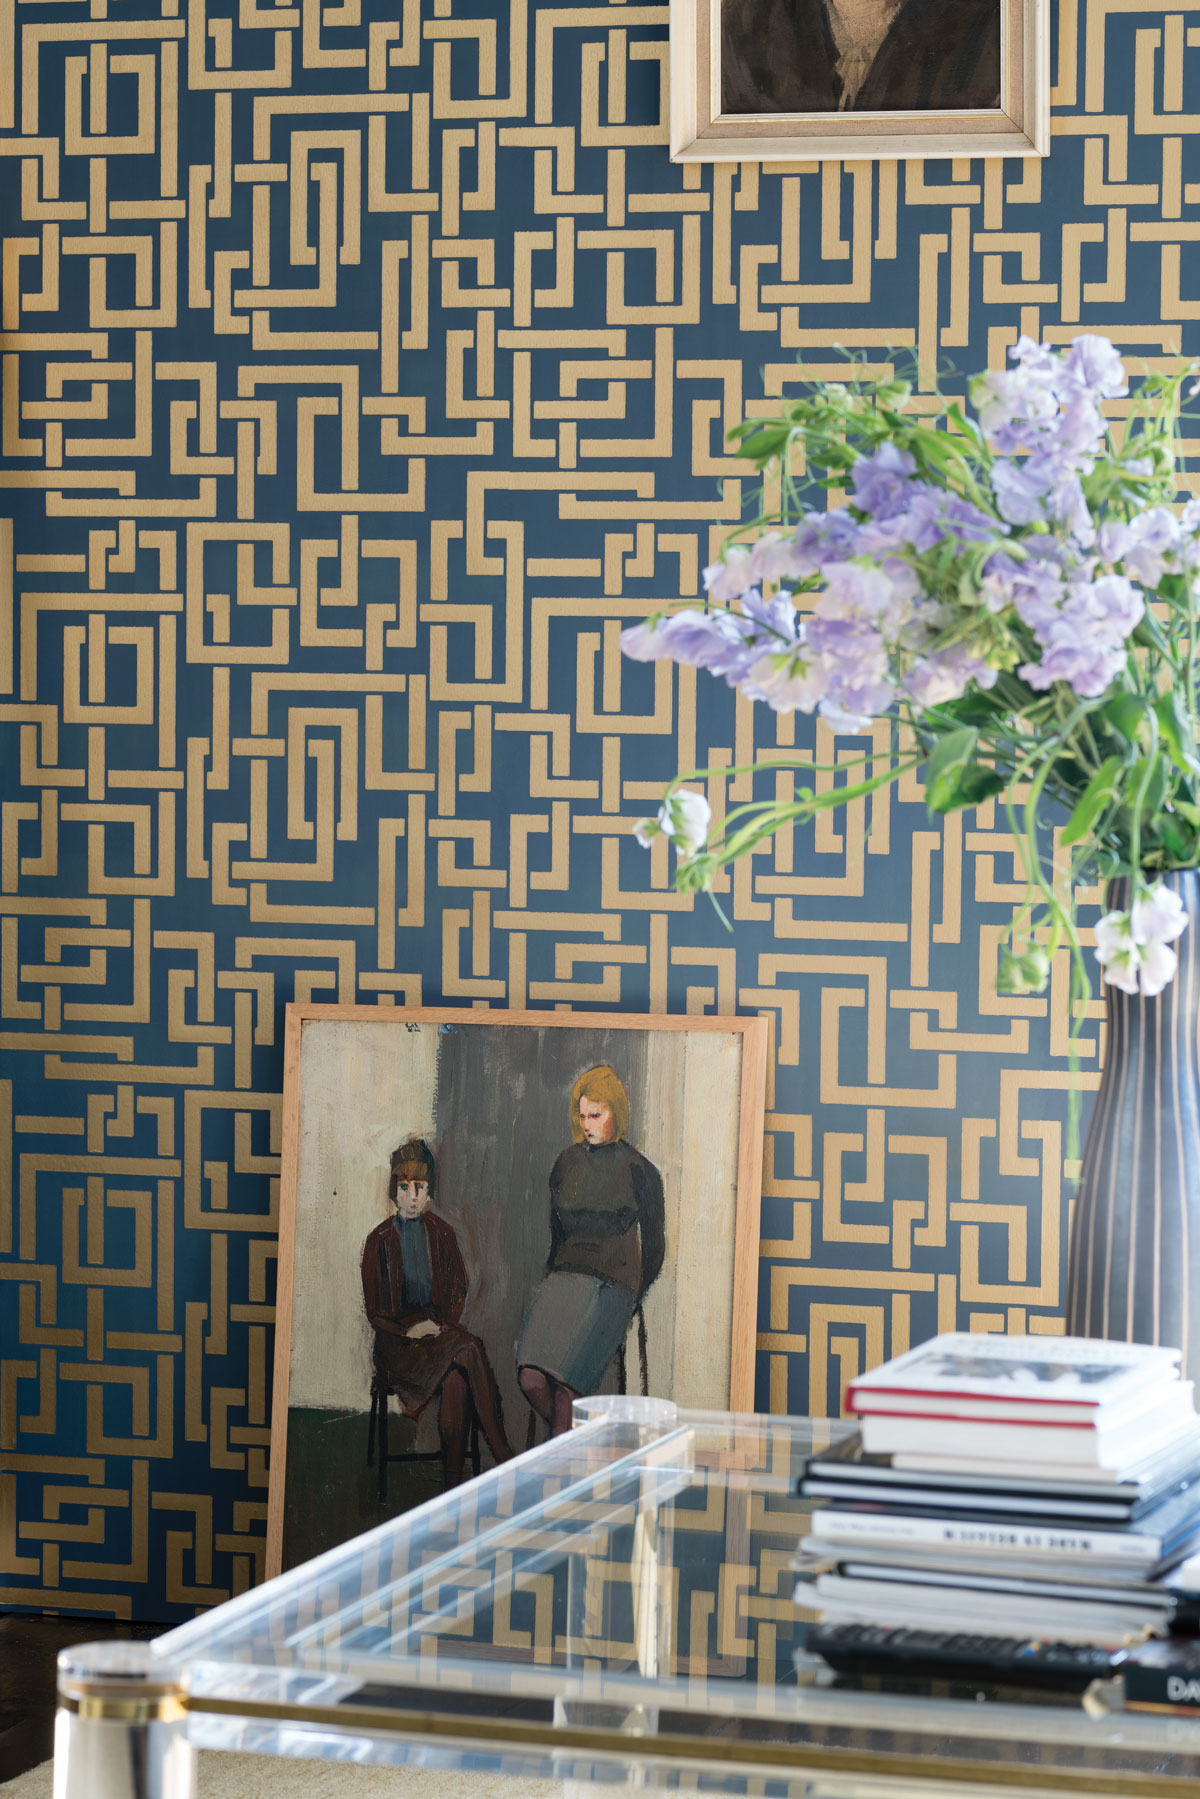 farrow ball channels the 1940s in latest wallpaper collection. Black Bedroom Furniture Sets. Home Design Ideas